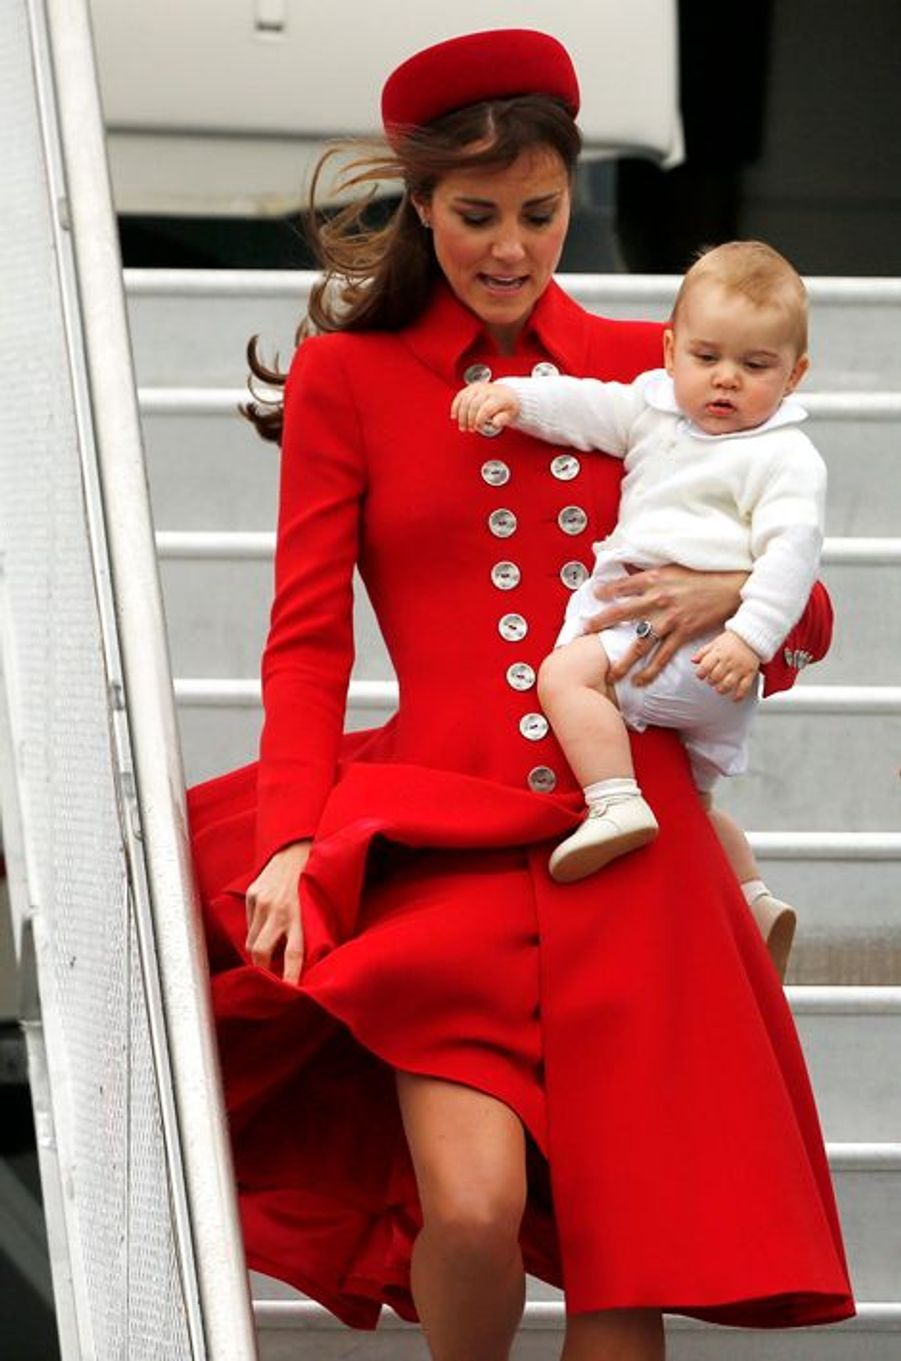 La duchesse de Cambridge Kate avec le prince George, le 7 avril 2014